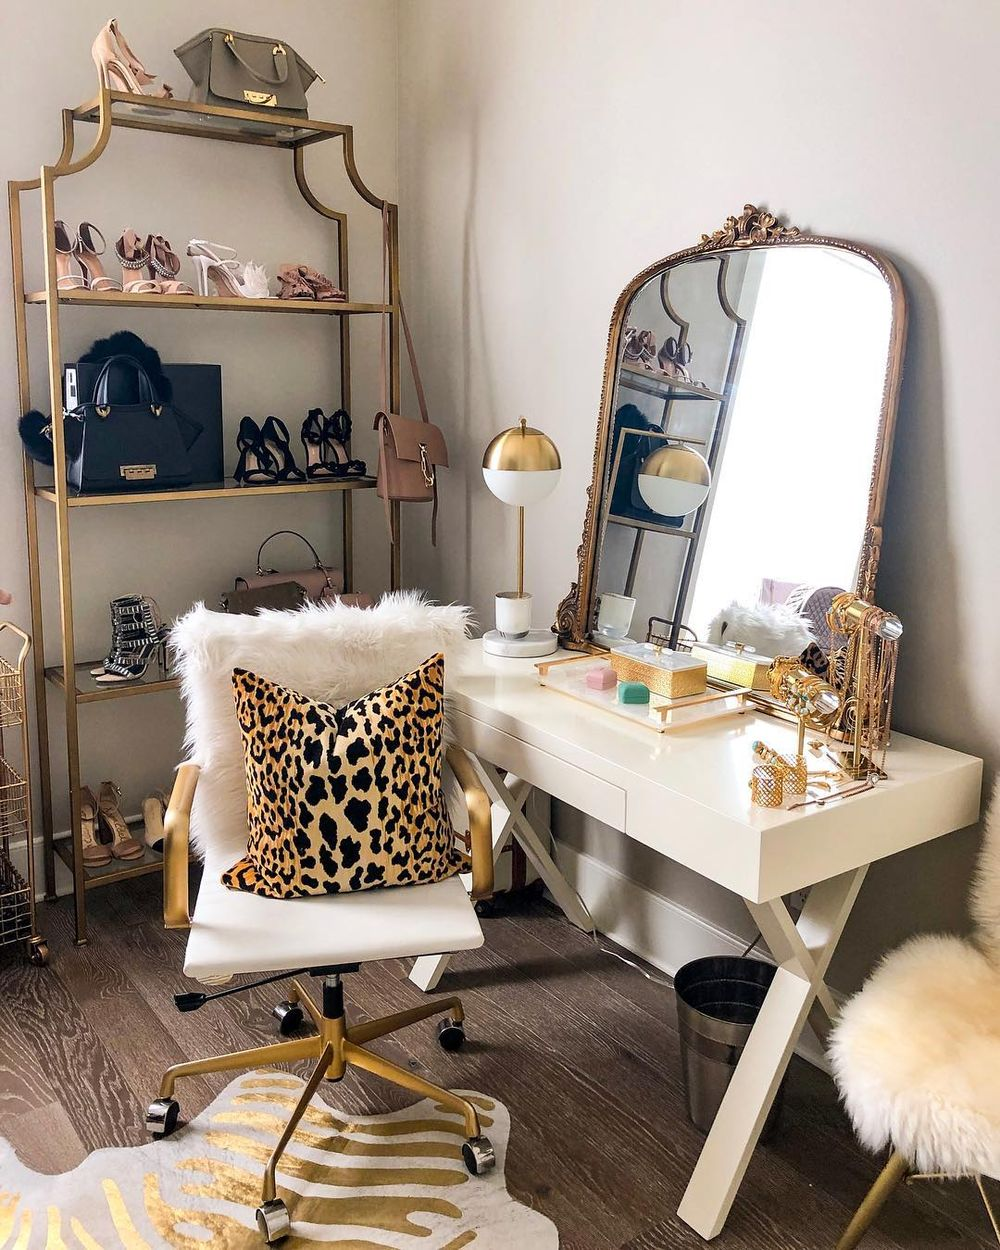 Glam animal print decor on a glam vanity via @hauteofftherack